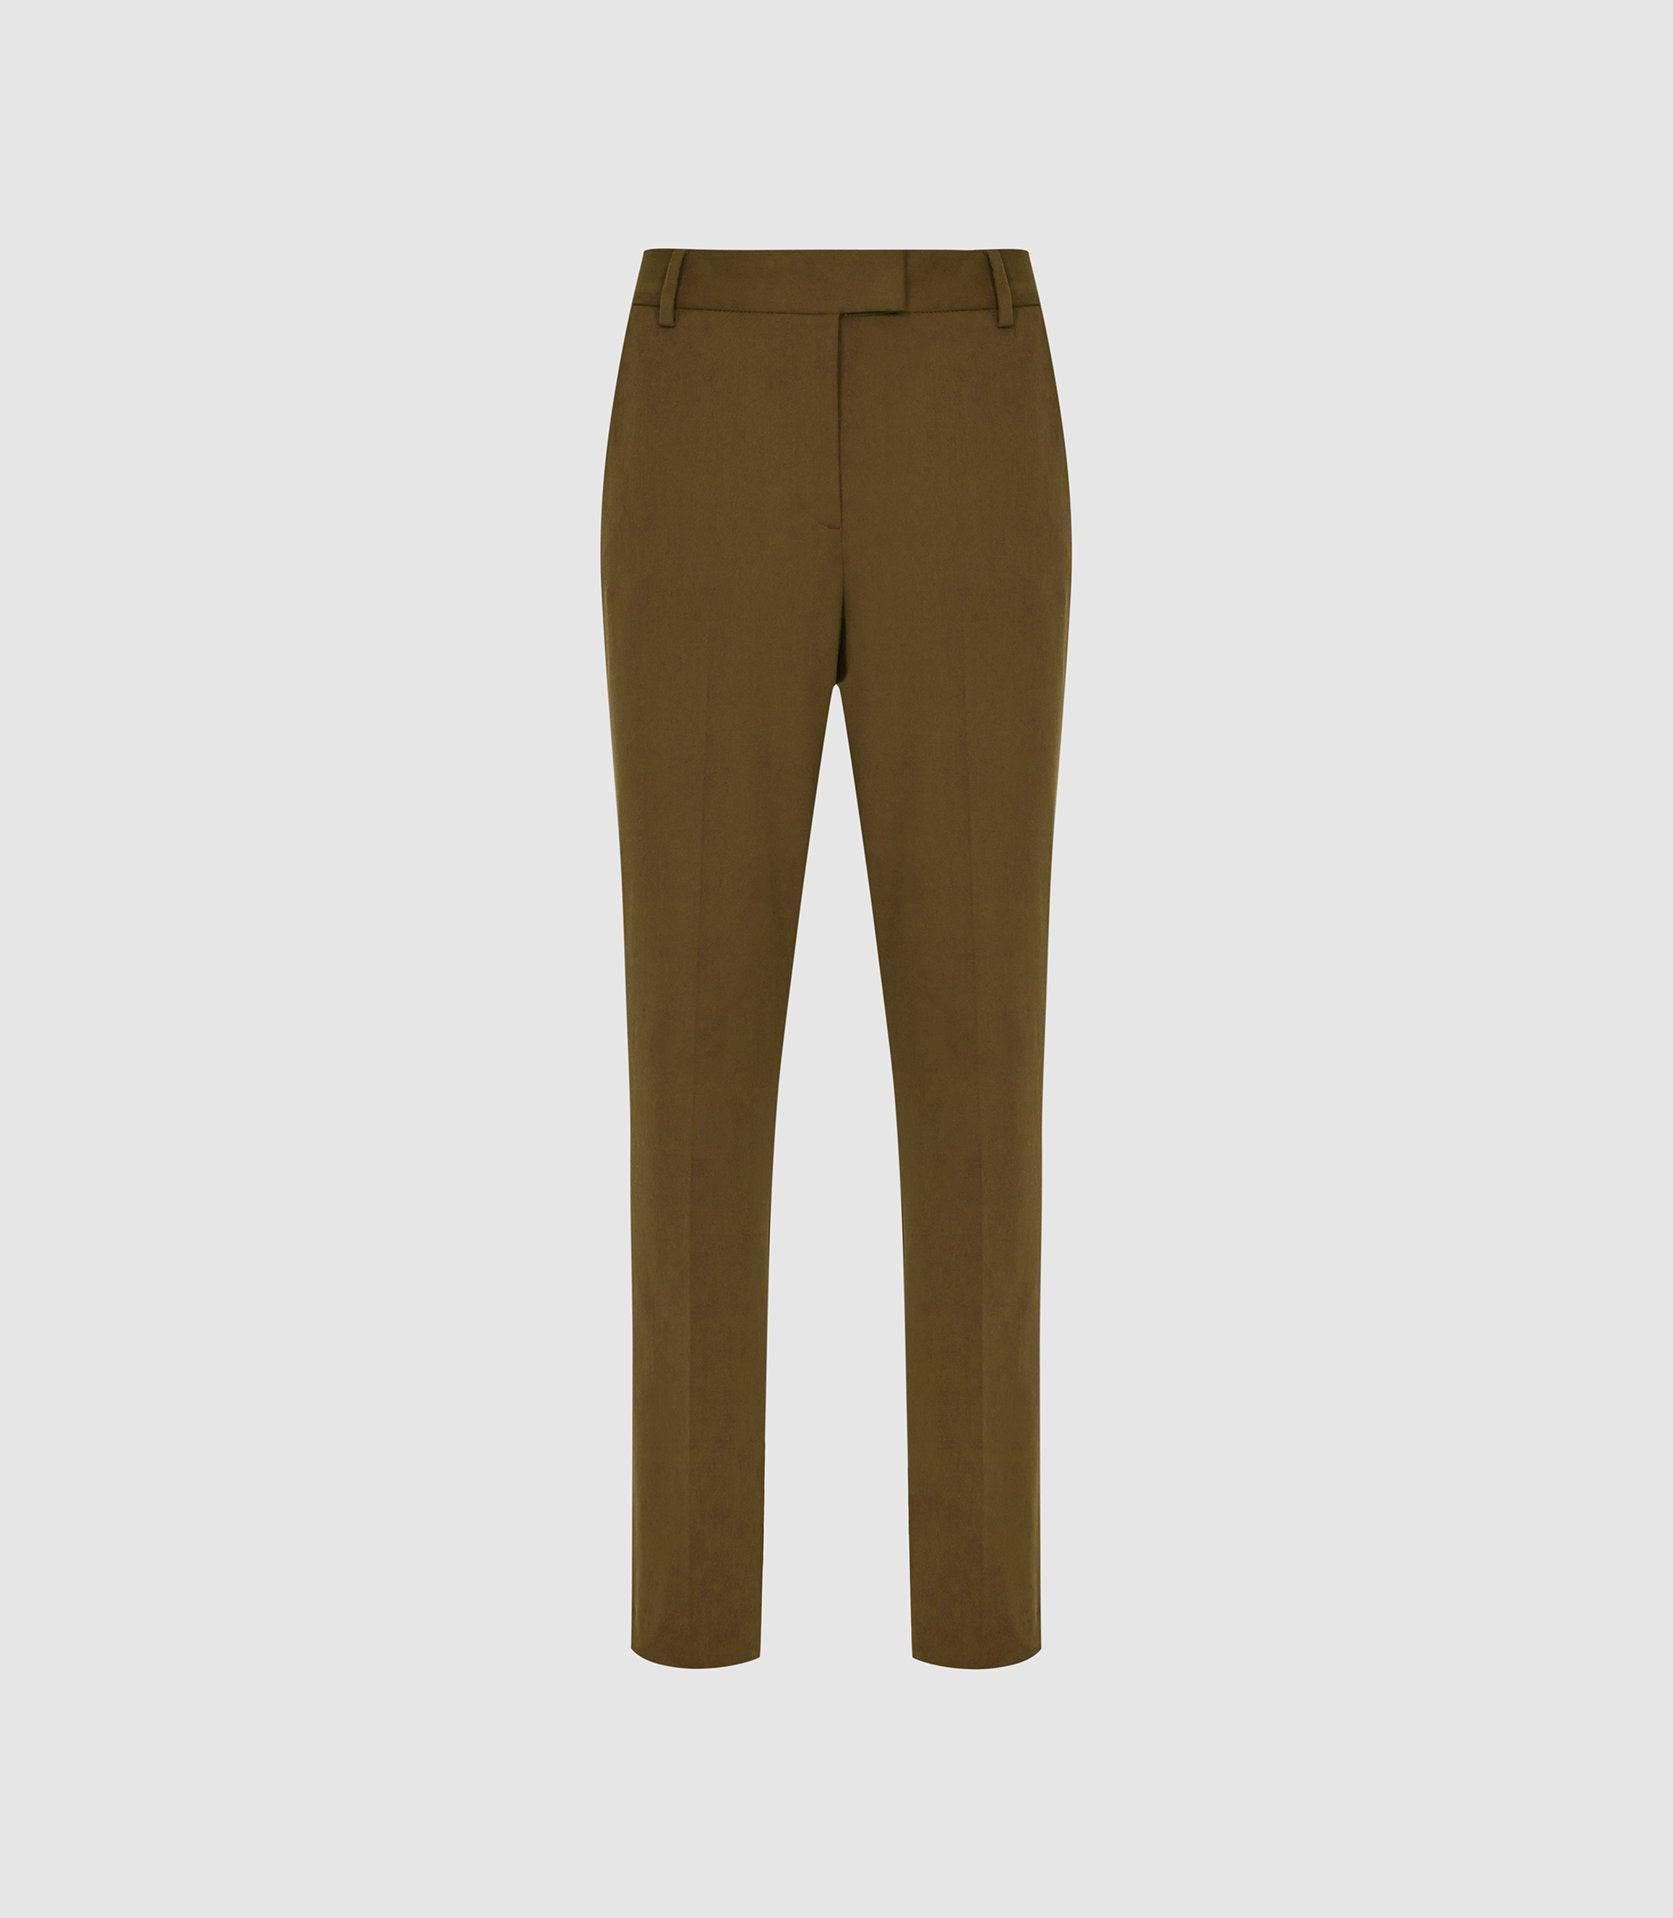 JOANNE - SLIM FIT TAILORED TROUSERS 4